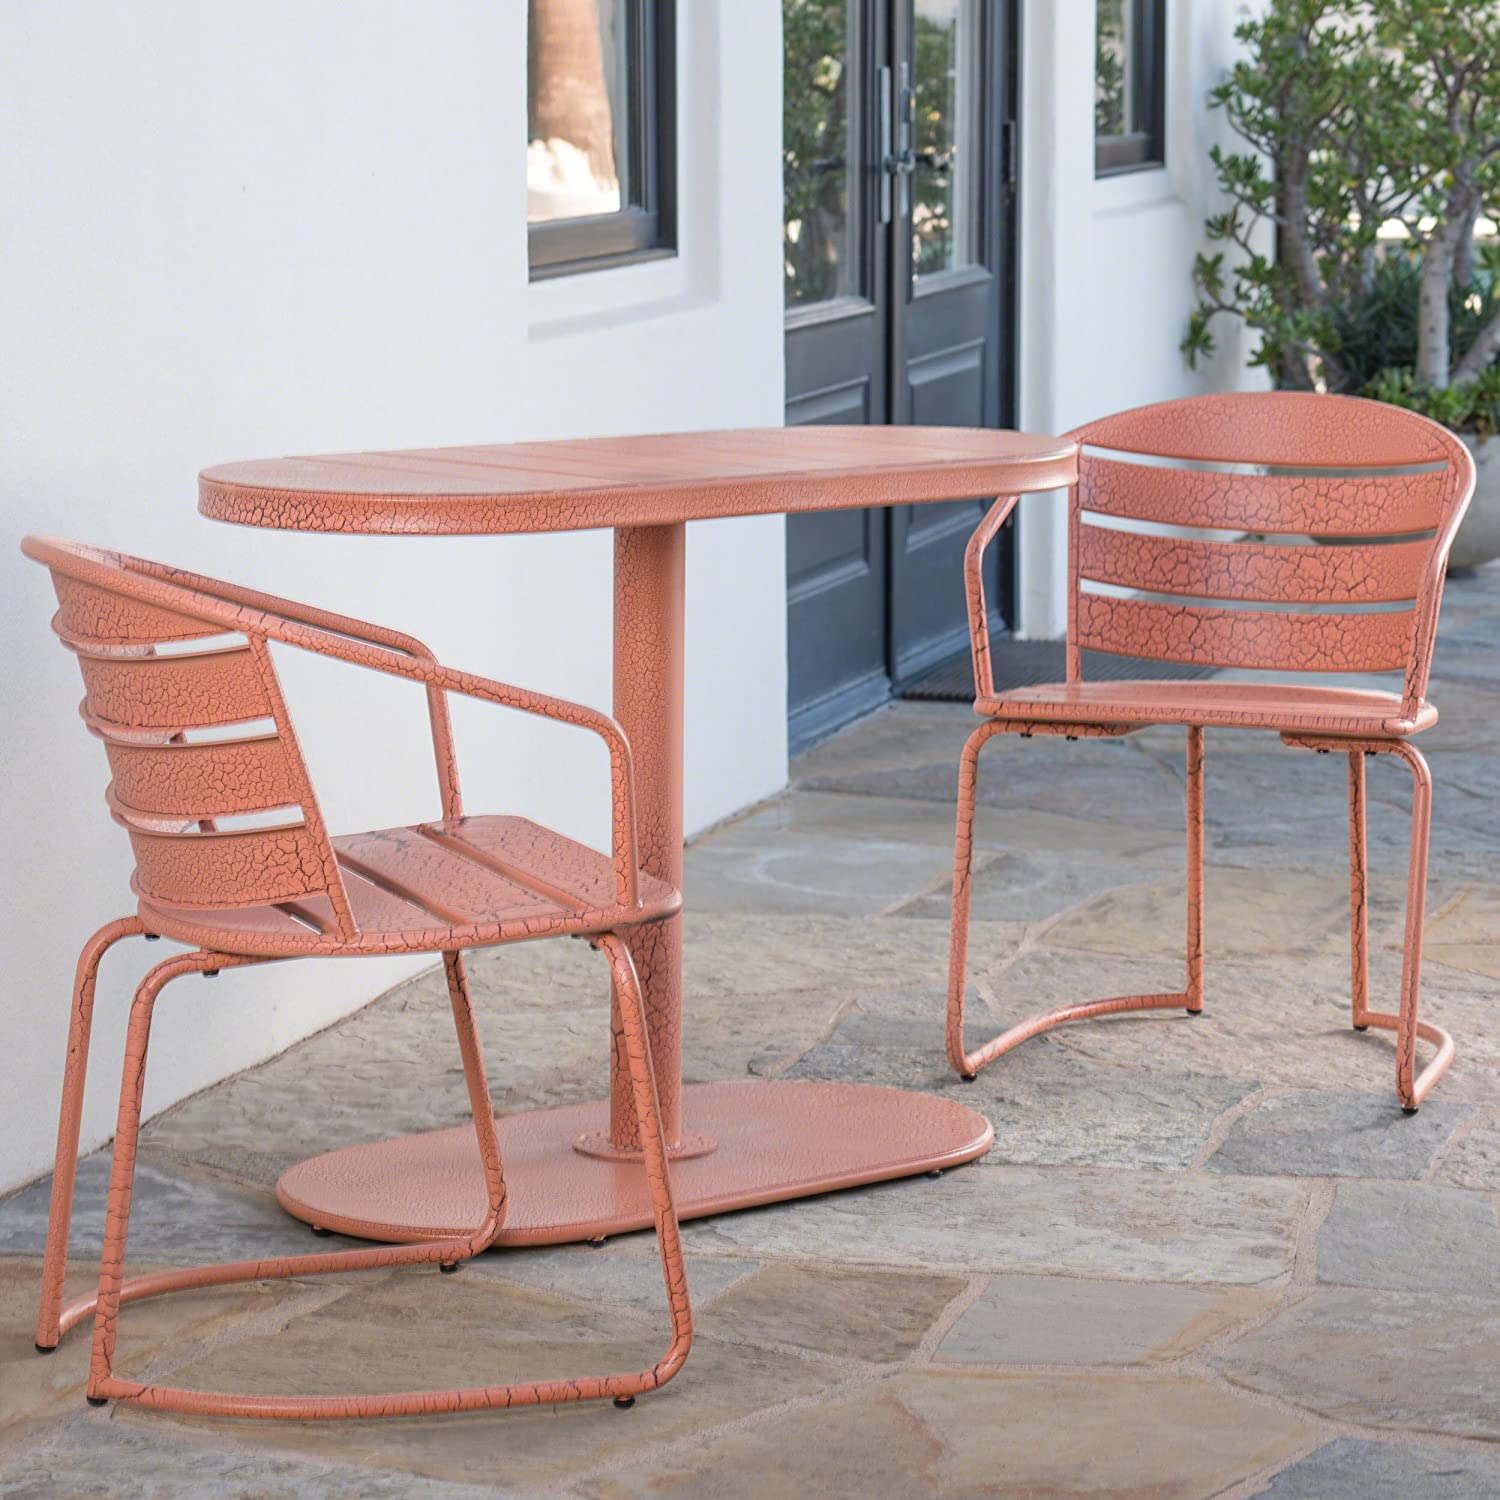 Porto Outdoor 3 Piece Crackle Orange Finished Iron Bistro Set